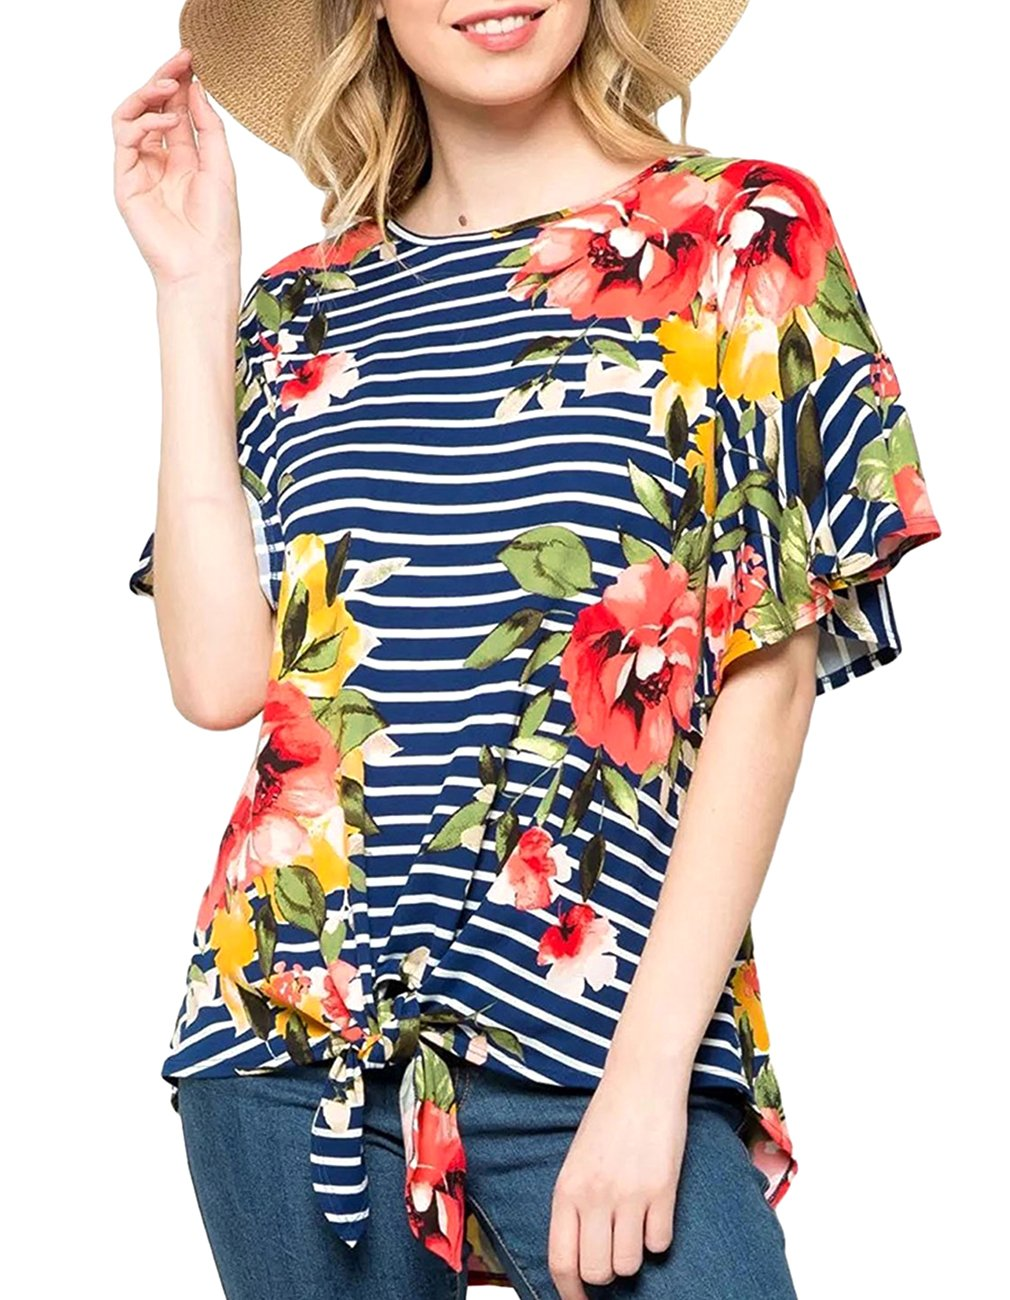 Defal Womens Summer Ruffled Short Sleeve Floral Stripe Tunic Top Knotted Hem Casual Blouse T-Shirt (Blue,XL)